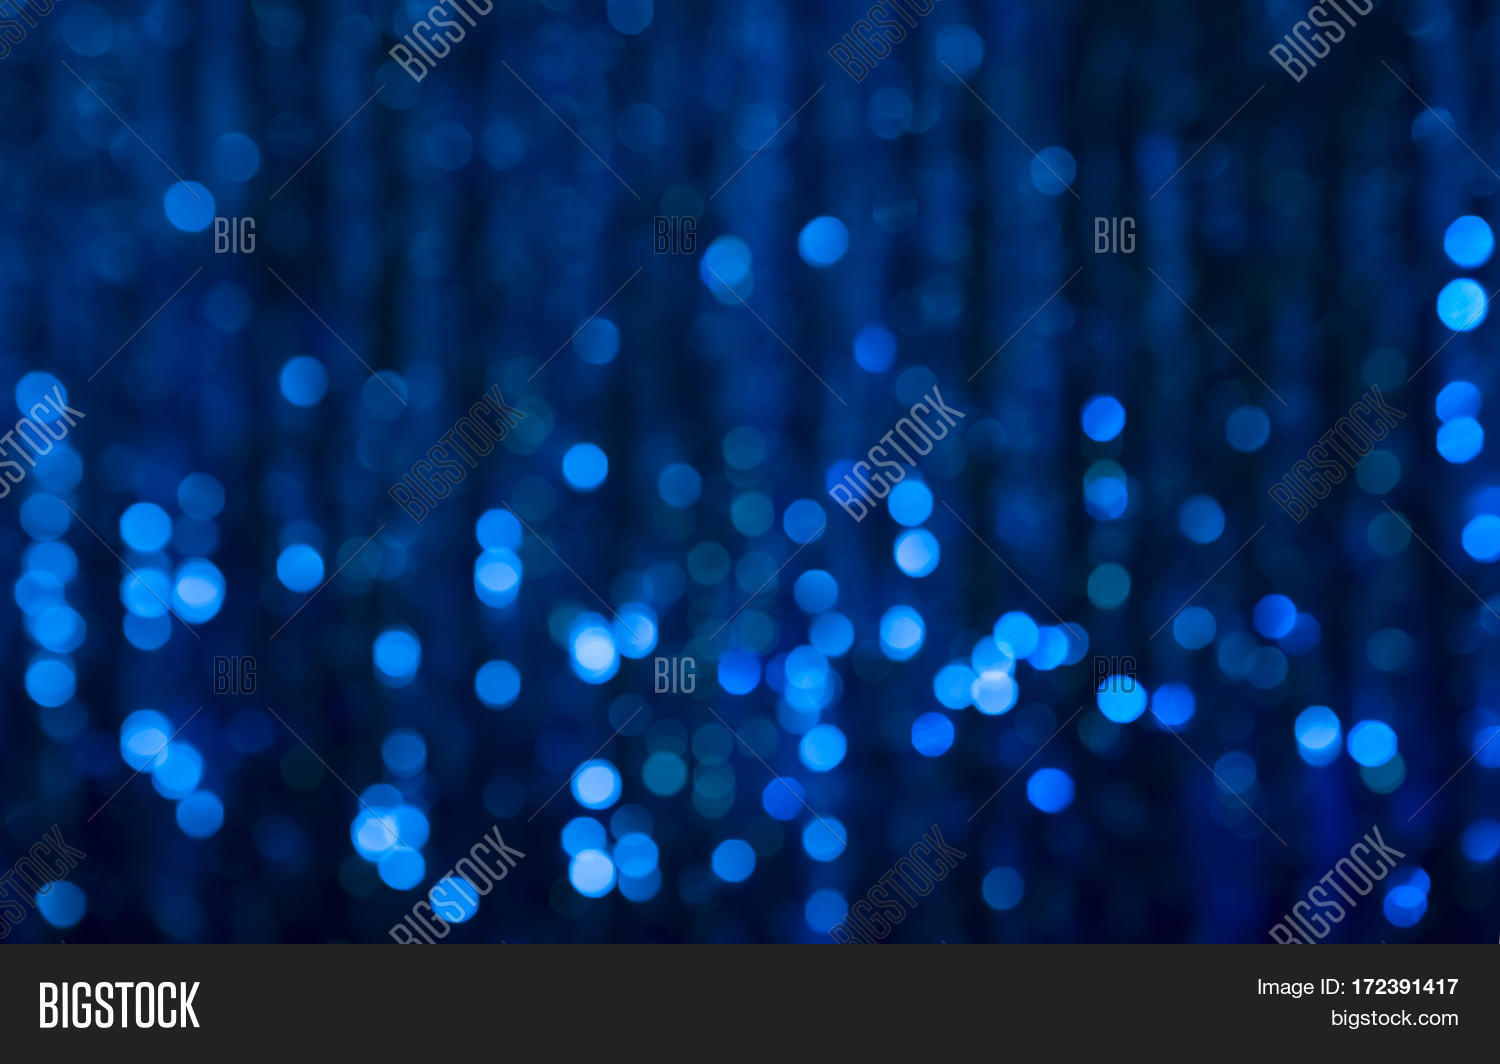 Navy Blue Festive Christmas Beautiful Abstract Background With Bokeh Lights.  Holiday Backdrop With Copy Space